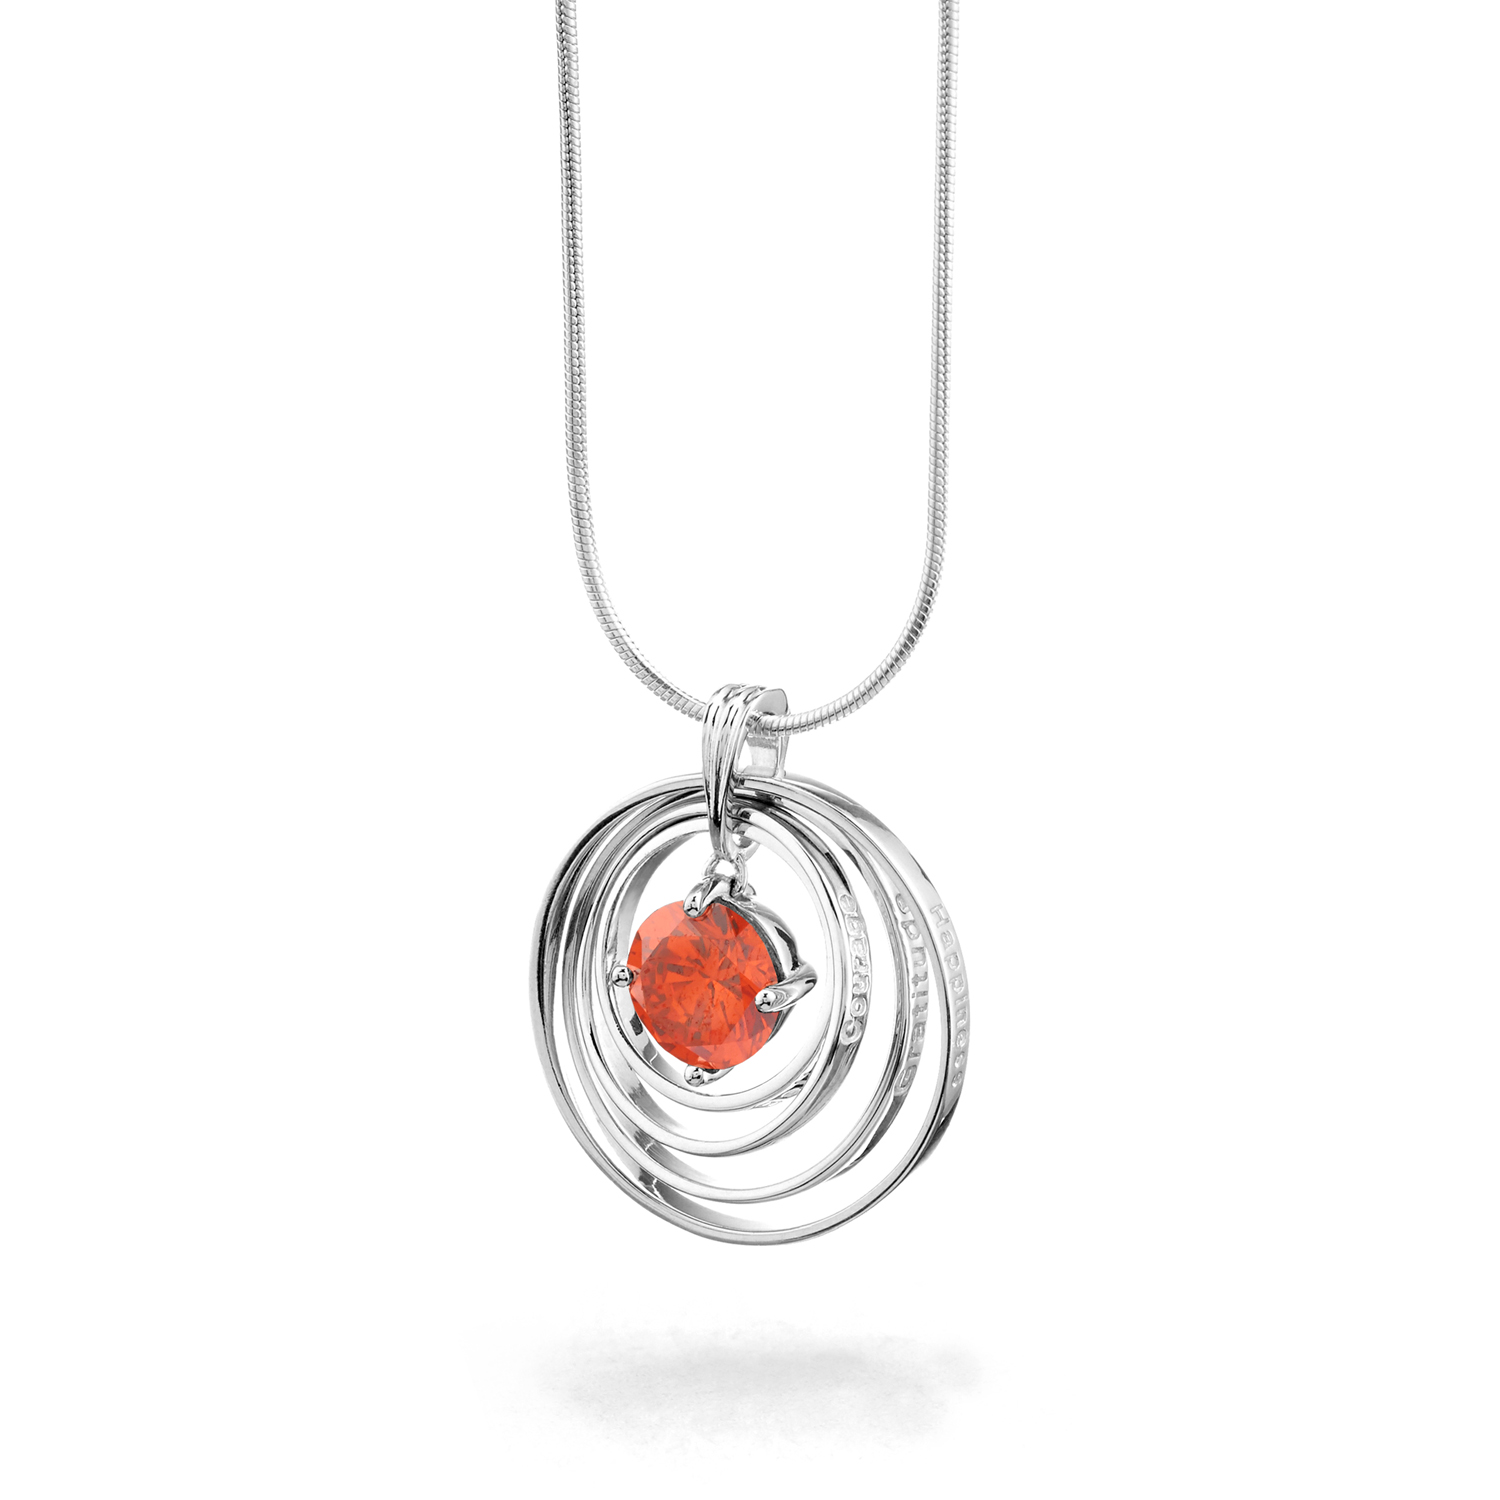 Synergy Necklace with orange love stone